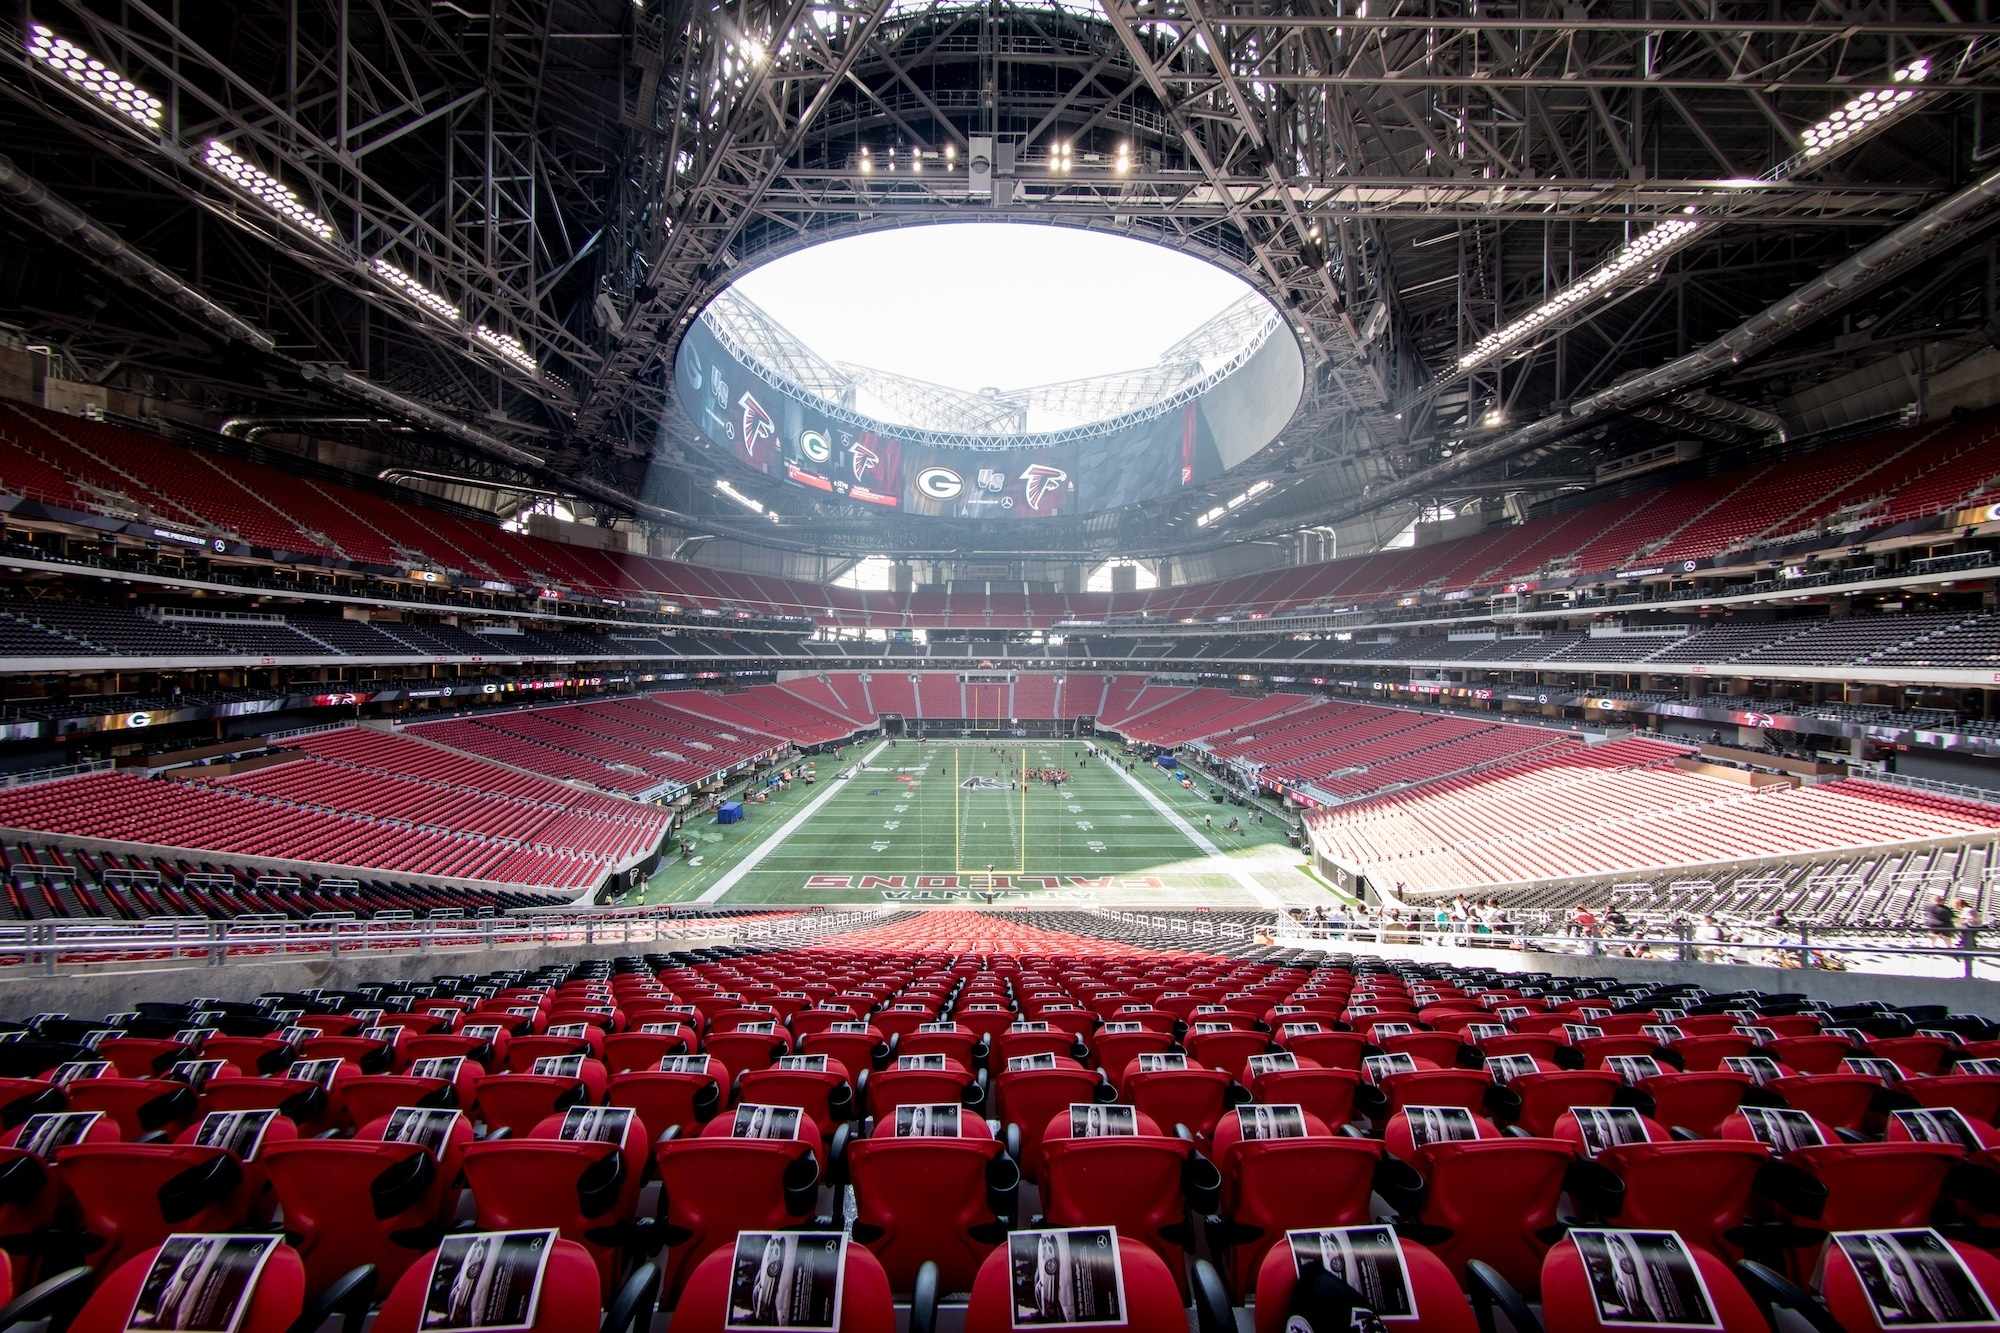 Atlanta Super Bowl Liii Host Committee Announces Official for Super Bowl 53 Fan Map